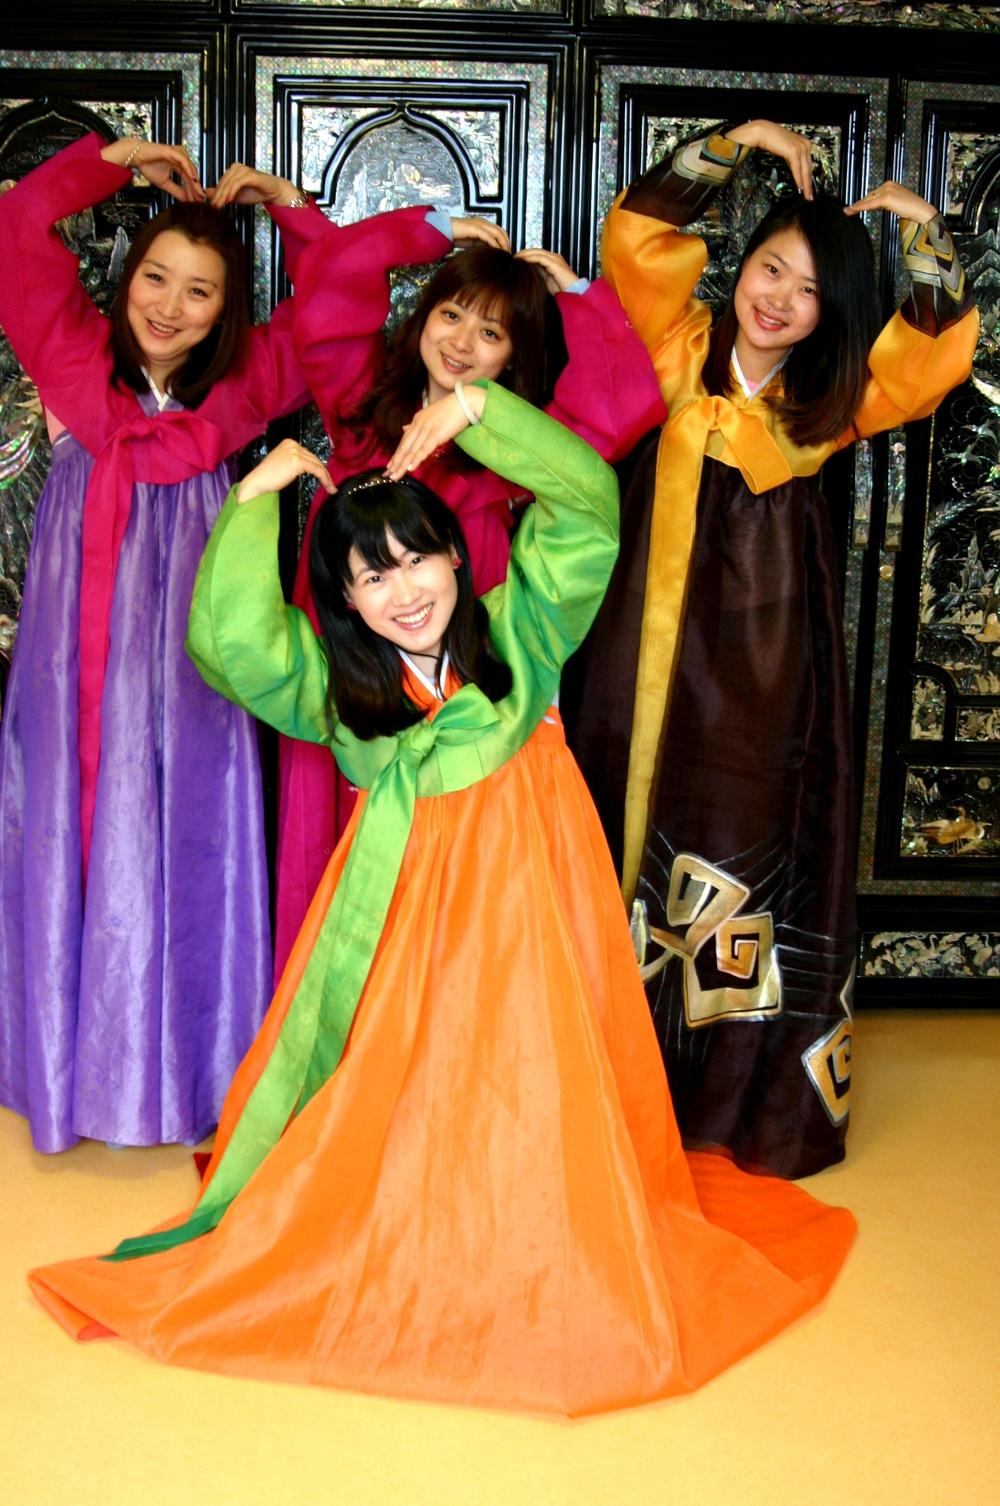 Our guest who wearing the Hanbok